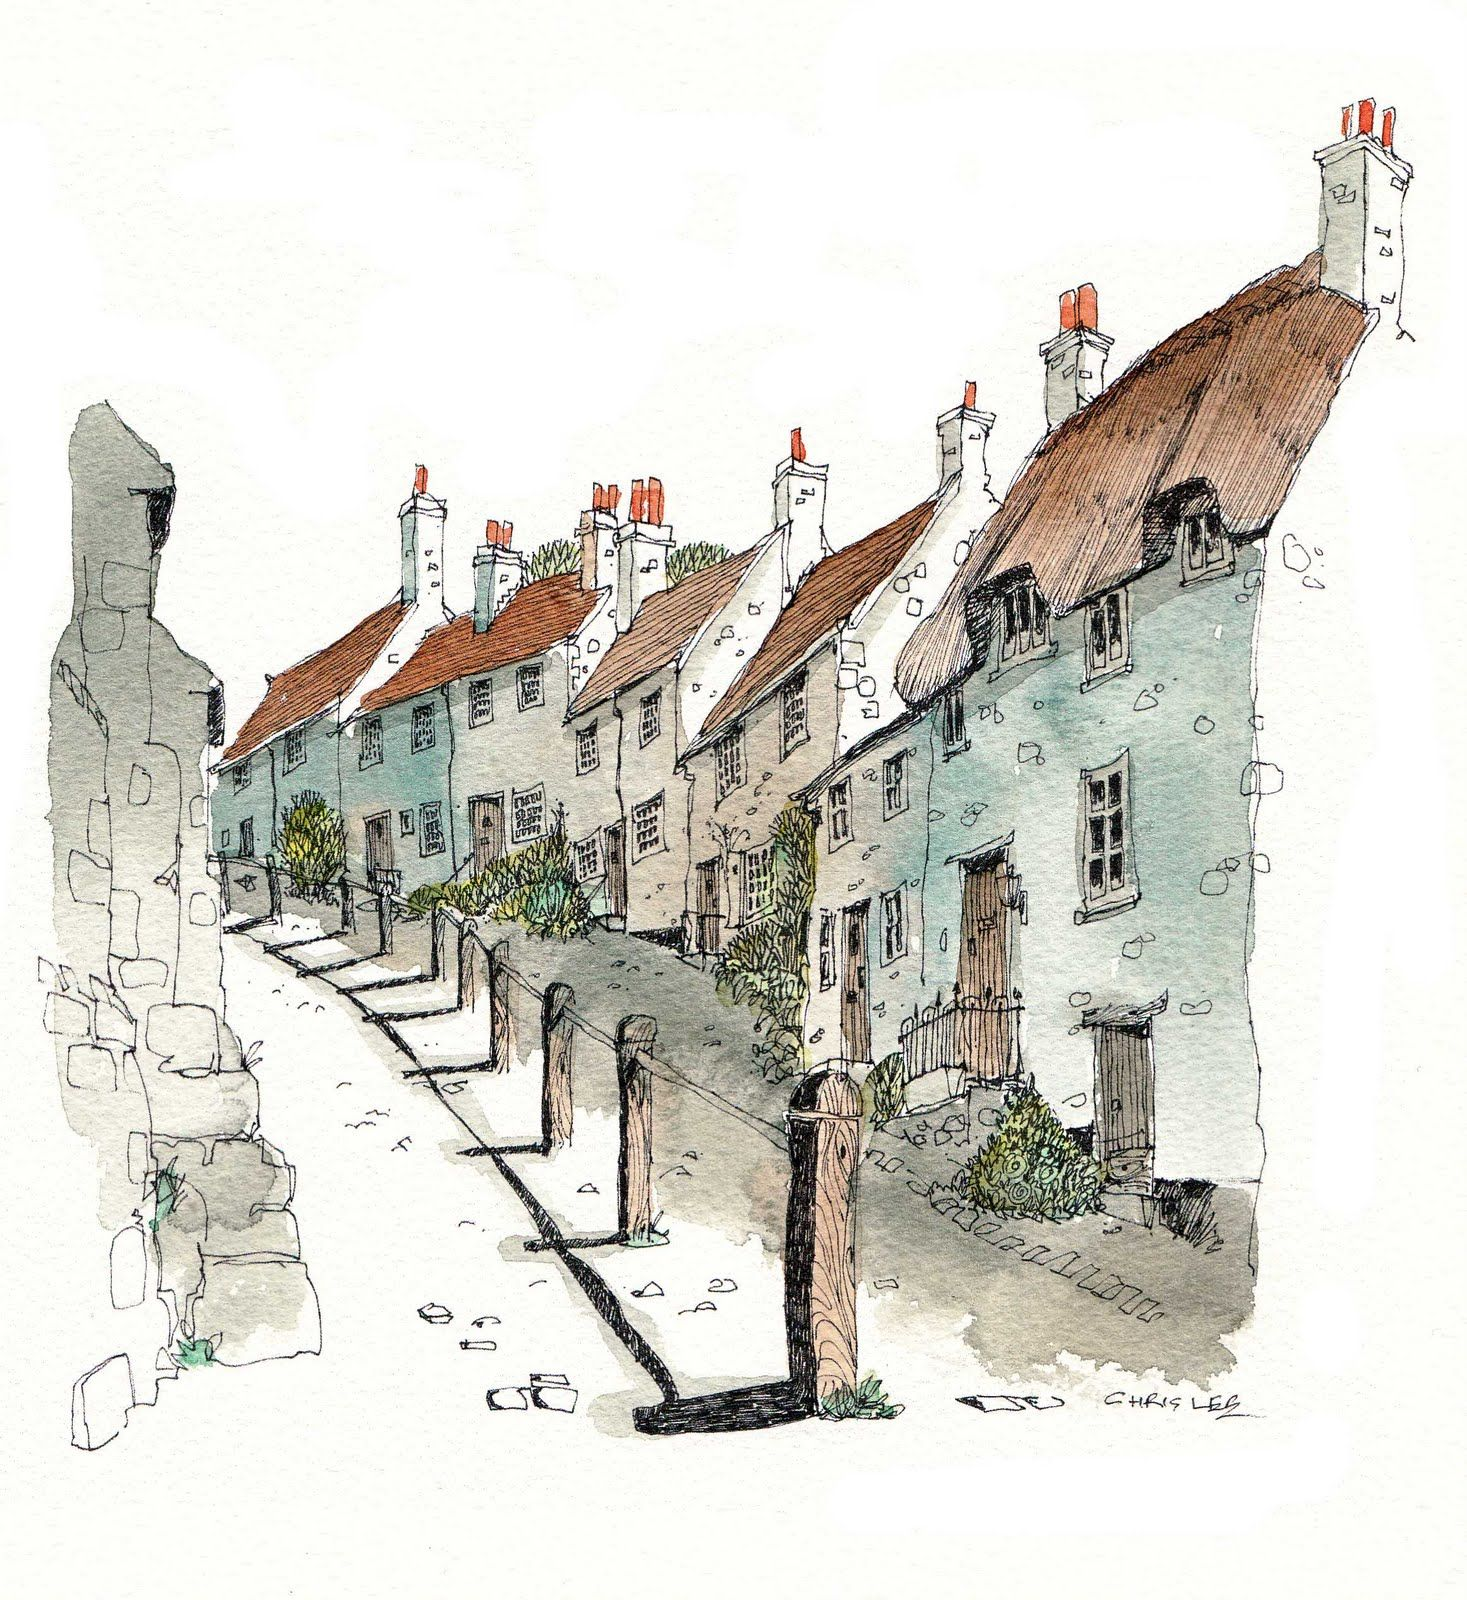 Gold Hill Is A Steep Cobbled Street In The Town Of Shaftesbury In